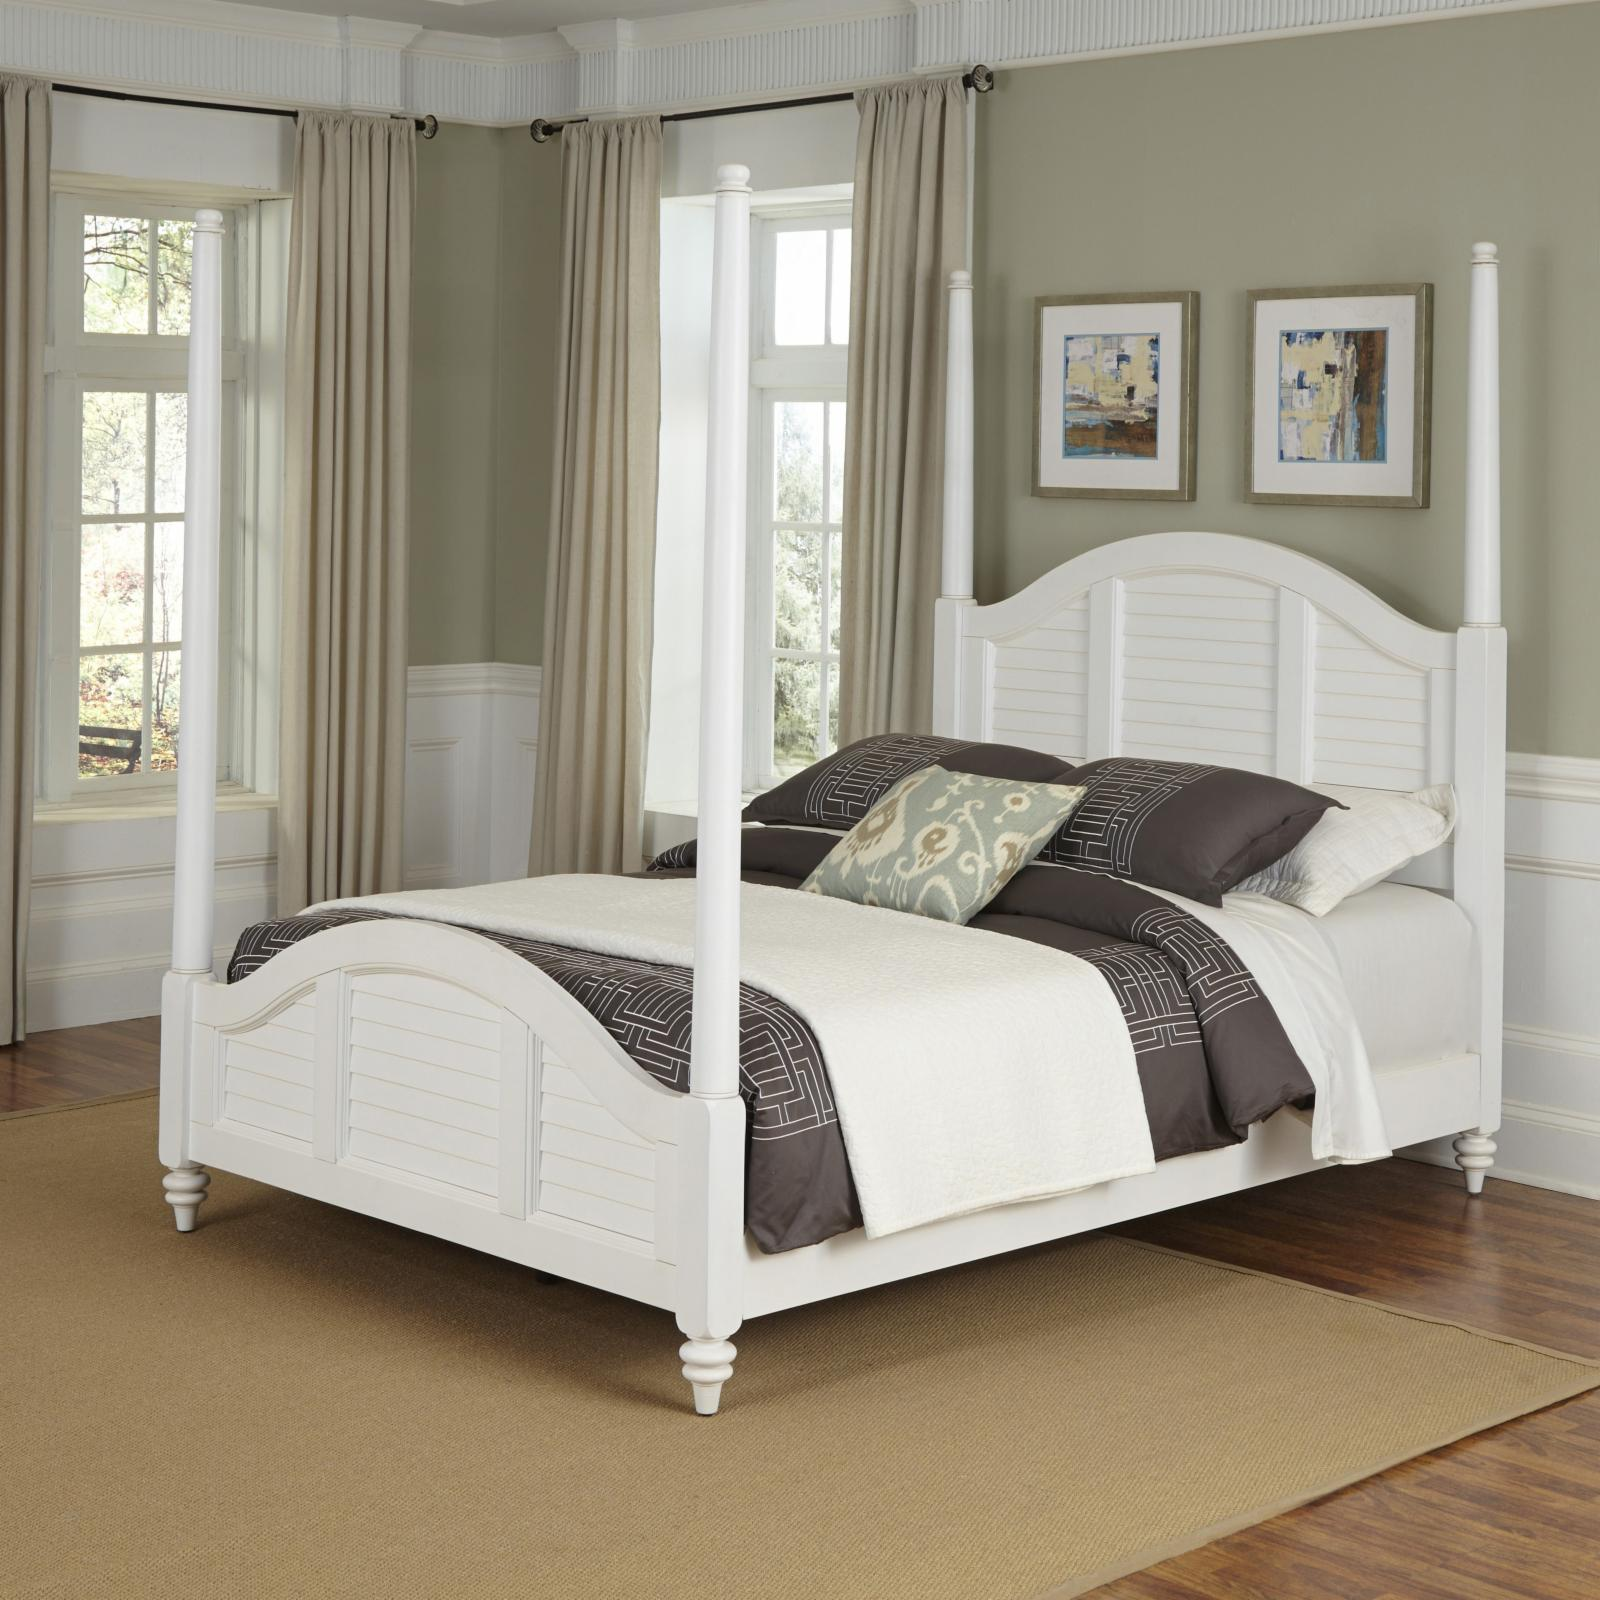 Home Styles Bermuda Poster Bed - 5543-420